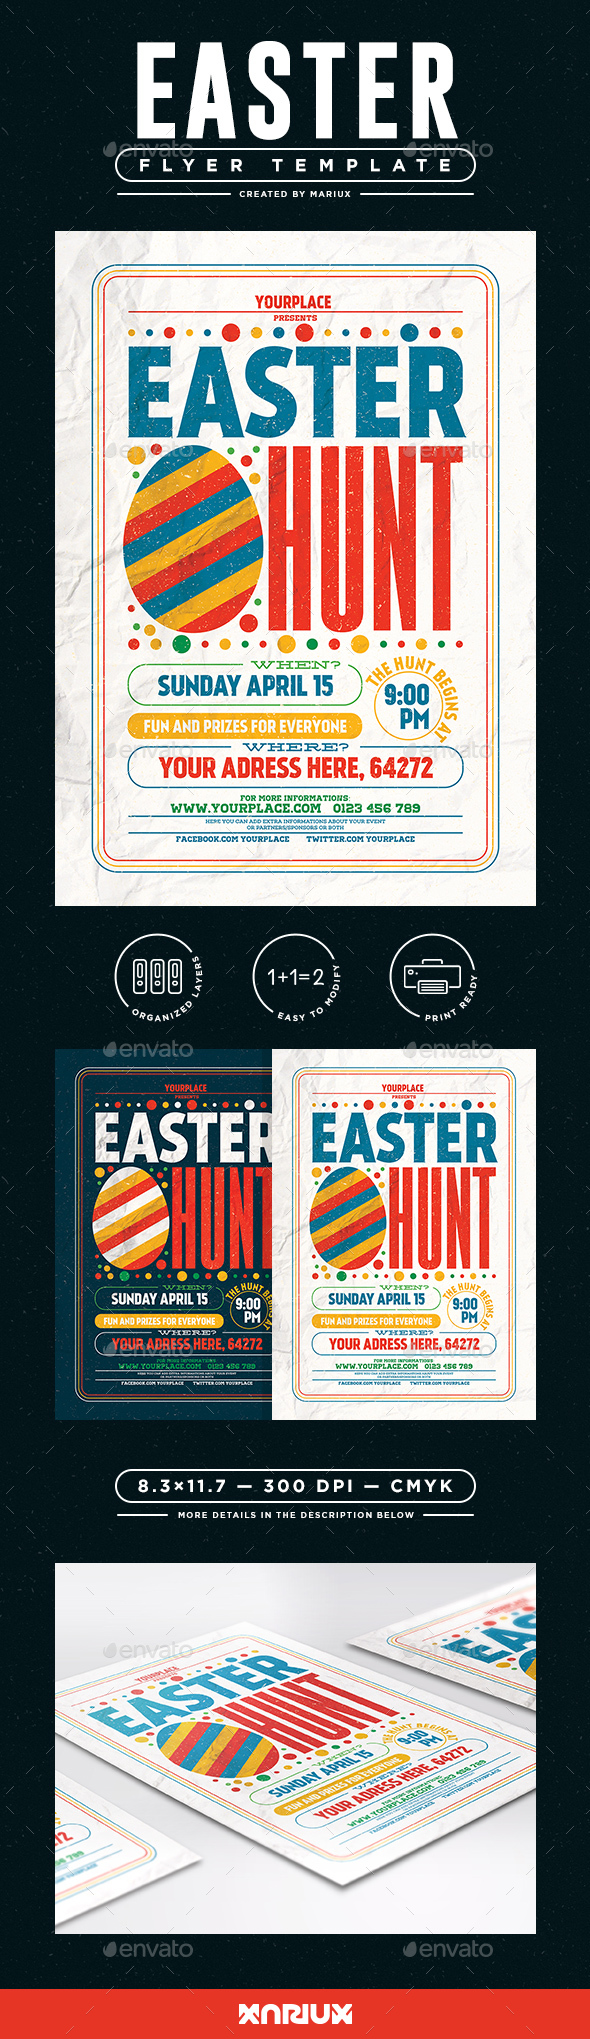 Easter Egg Hunt Flyer/Poster - Events Flyers